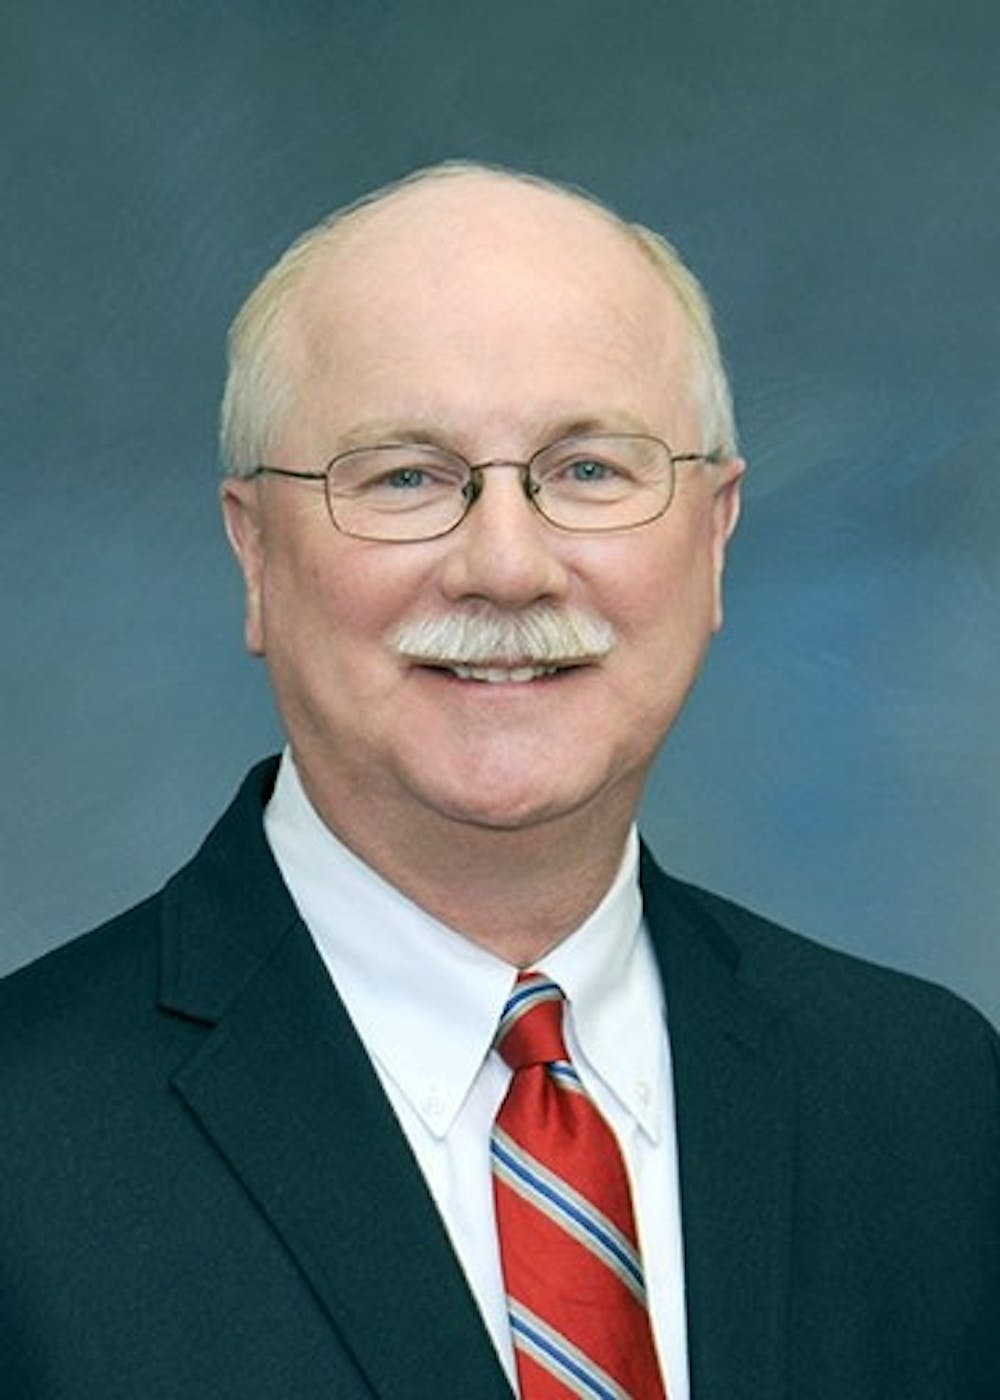 Harpster announces plans to retire as SU's president in January